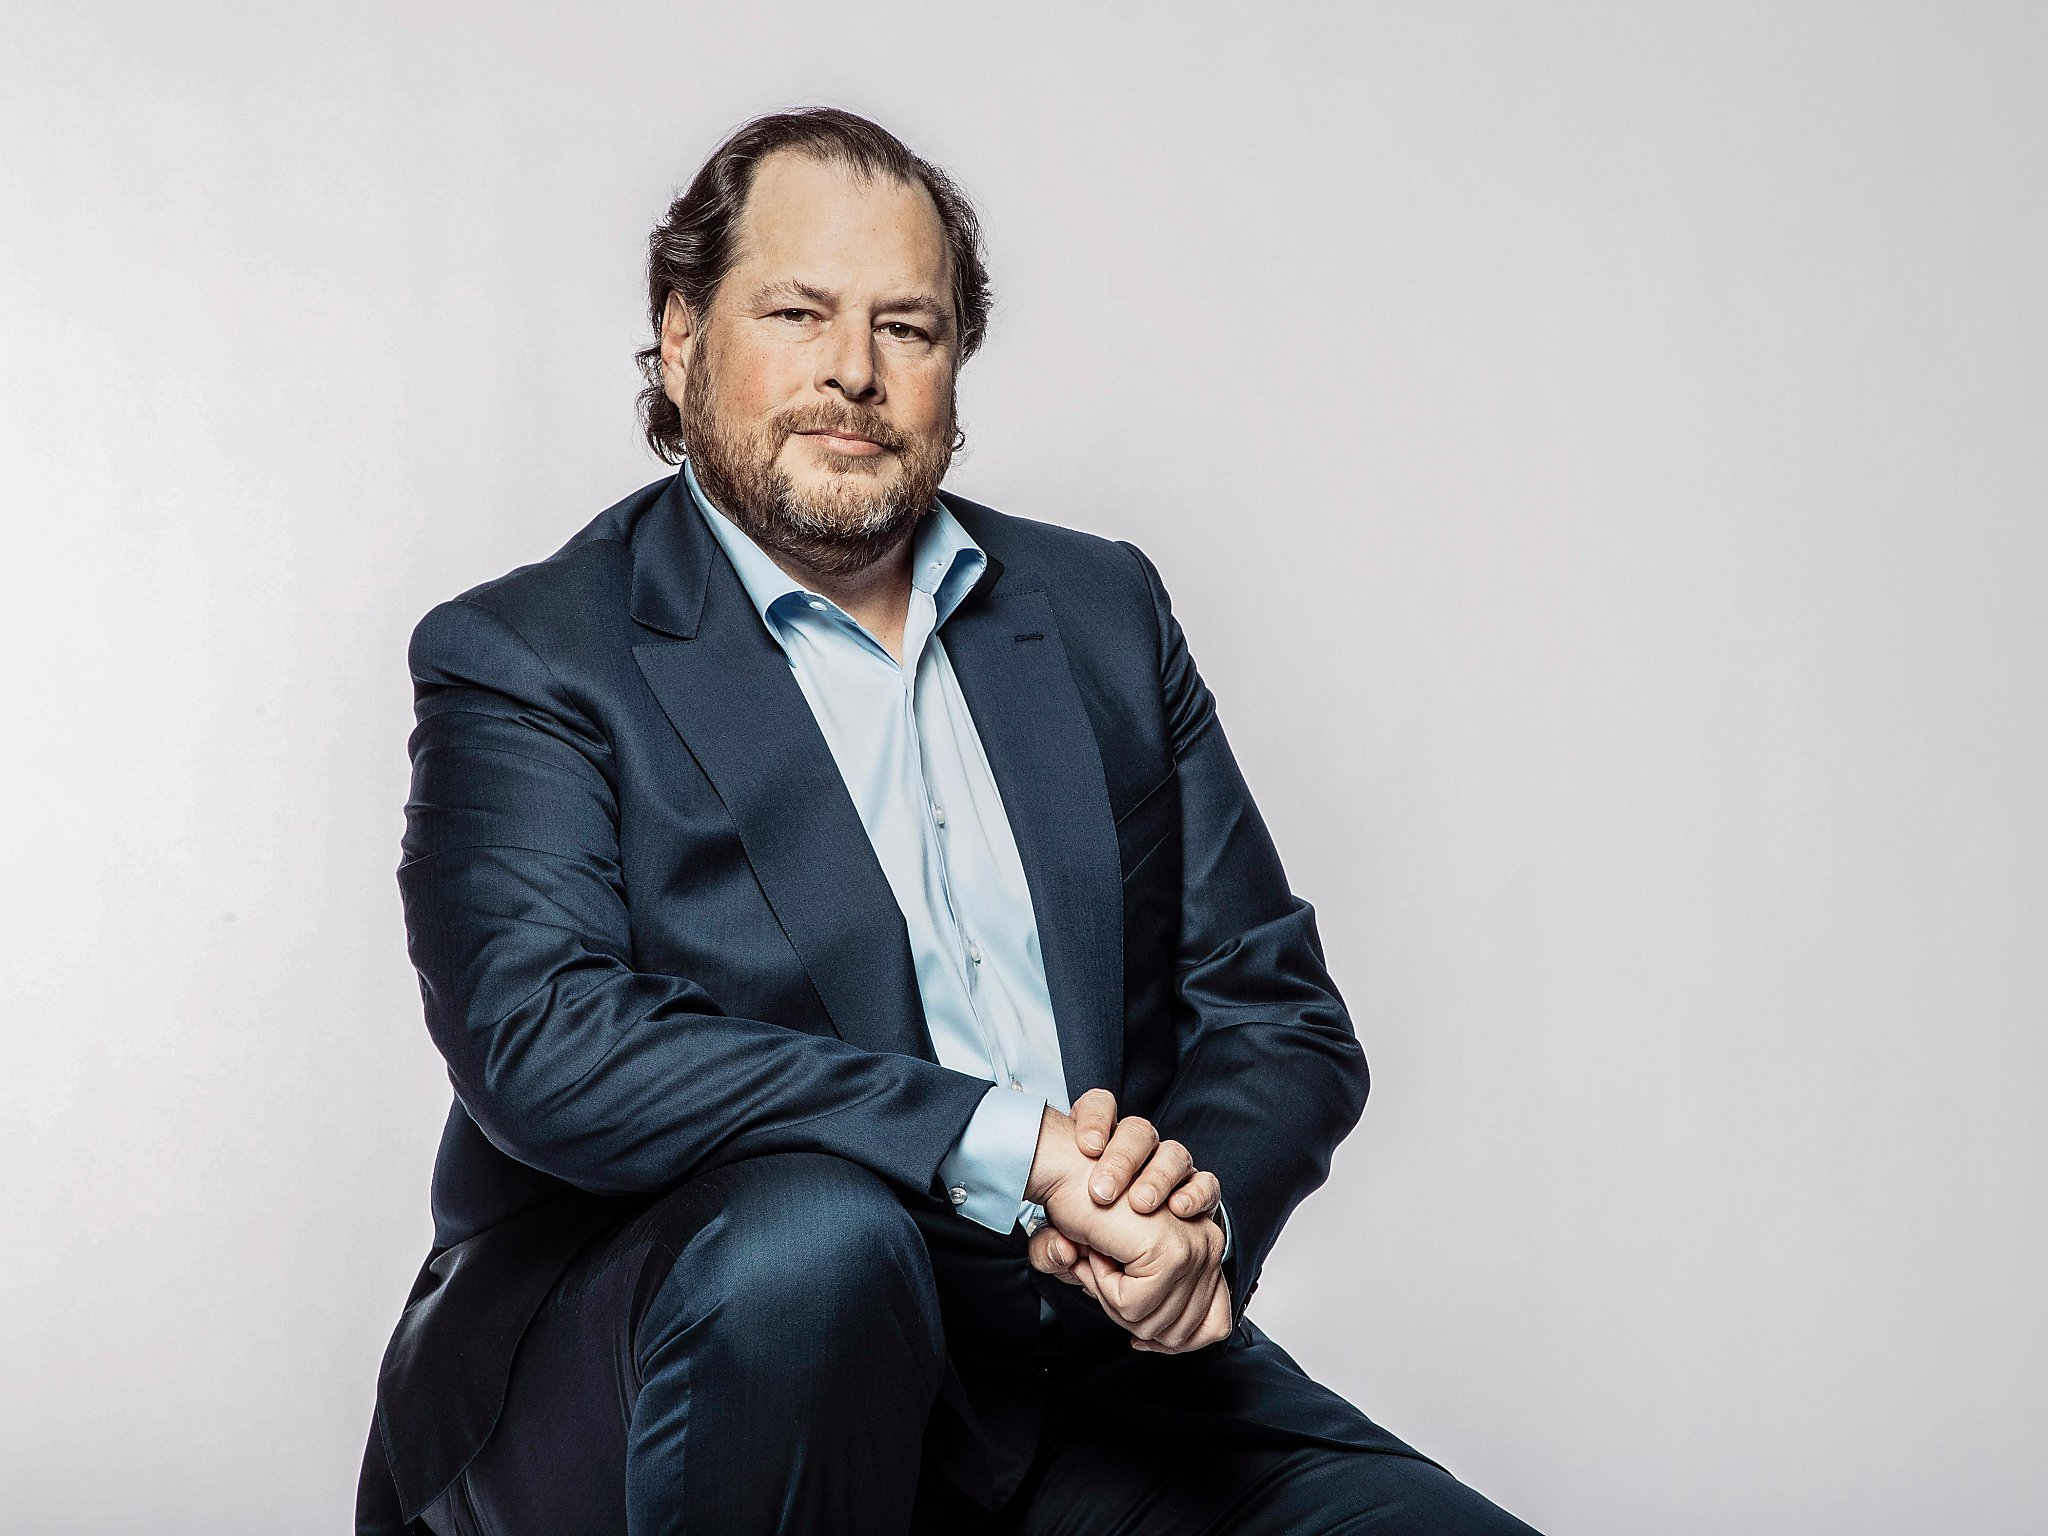 Salesforce co-CEO Keith Block steps down, Marc Benioff becomes sole CEO